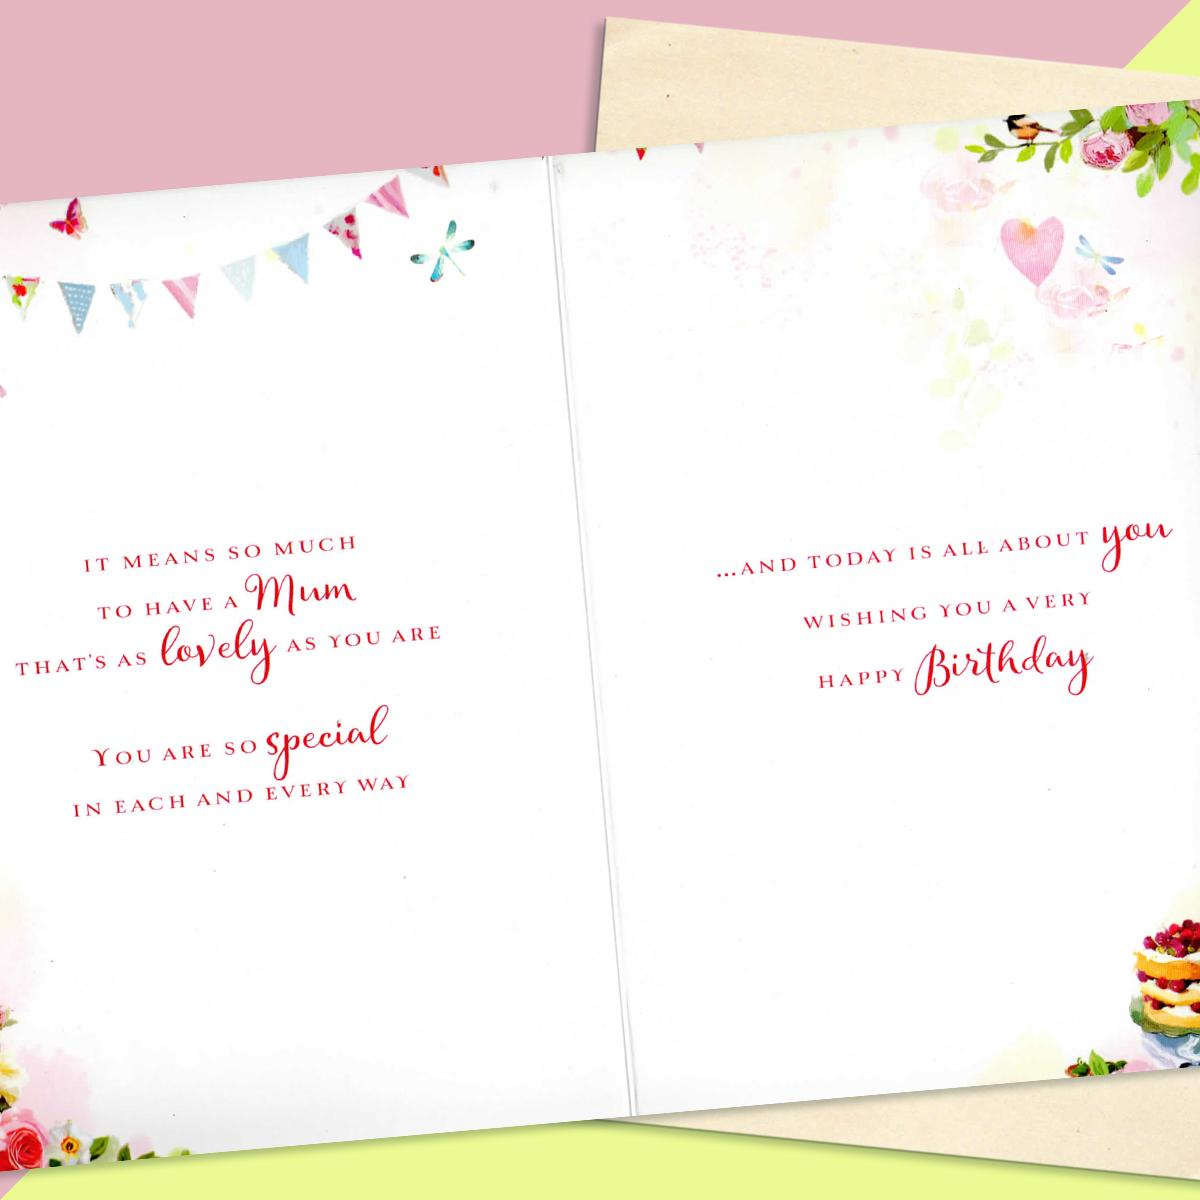 Inside Image Of Mum Birthday Card Showing Layout And Printed Text